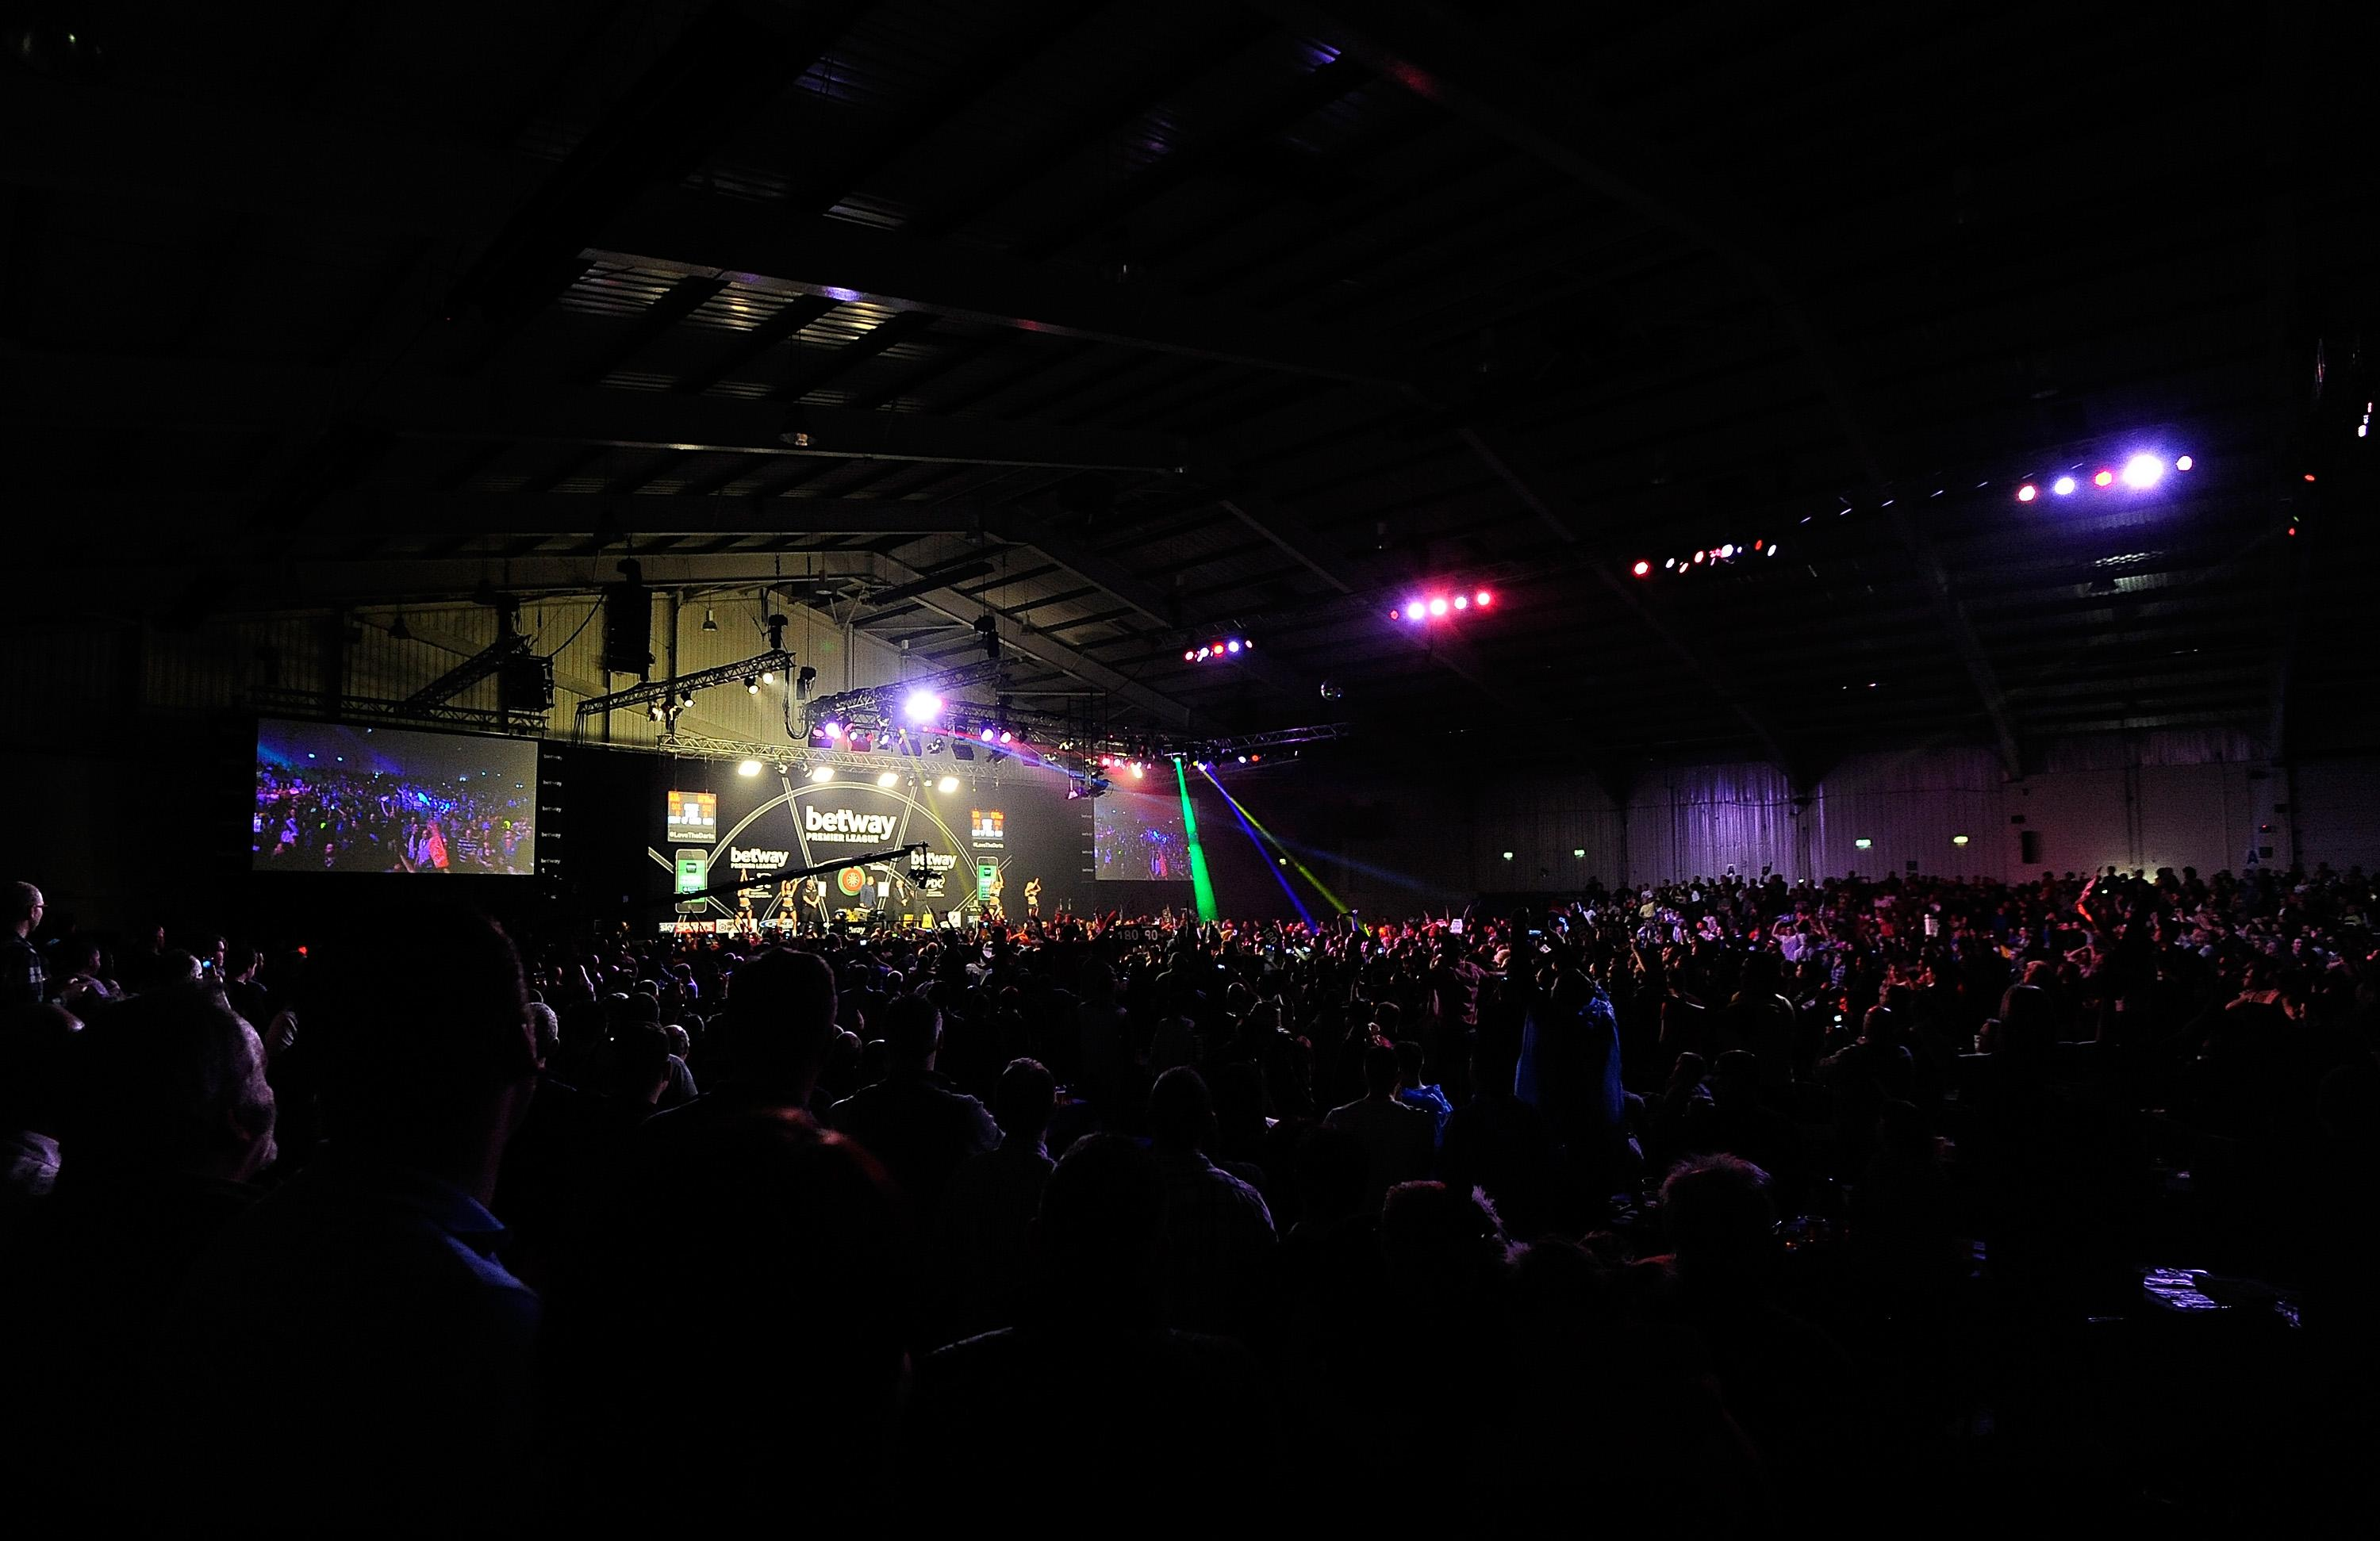 The Westpoint Arena in Exeter was due to hold the Premier League Darts